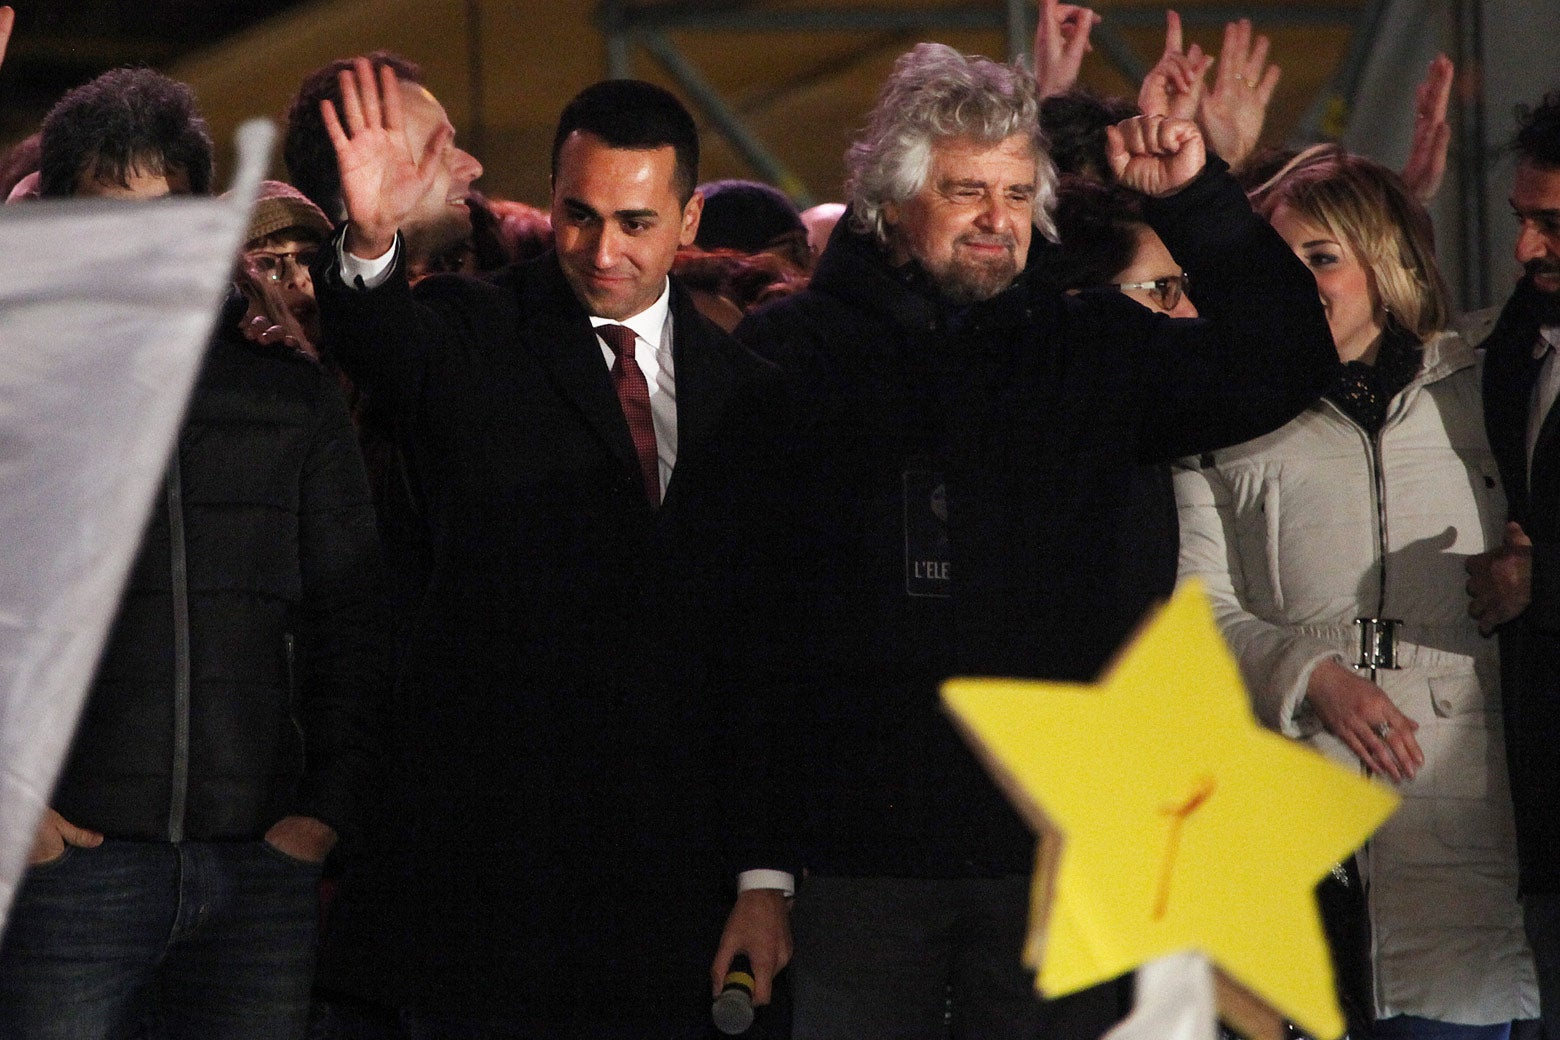 Luigi Di Maio and Beppe Grillo wave at the crowd.